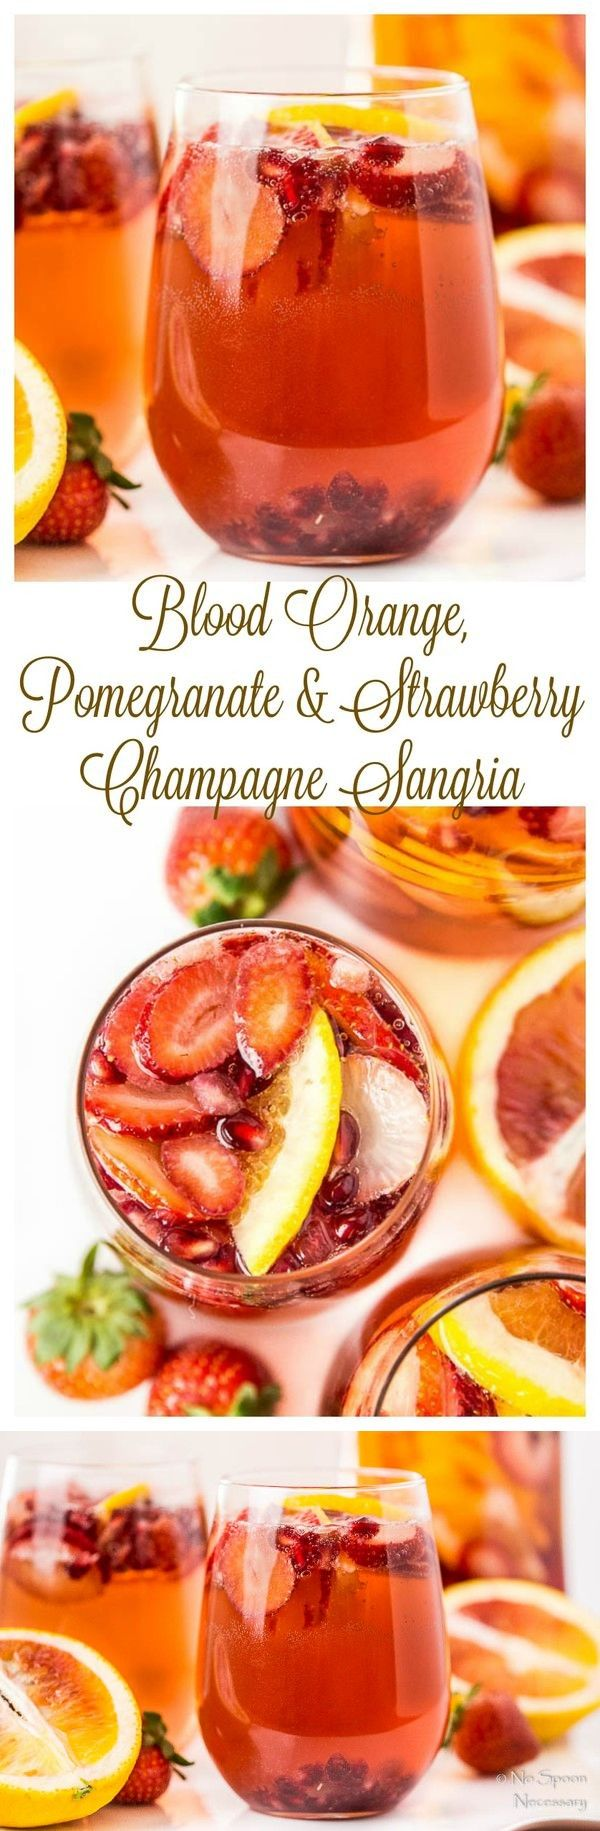 Champagne Sangria (with Blood Orange, Pomegranate & Strawberry